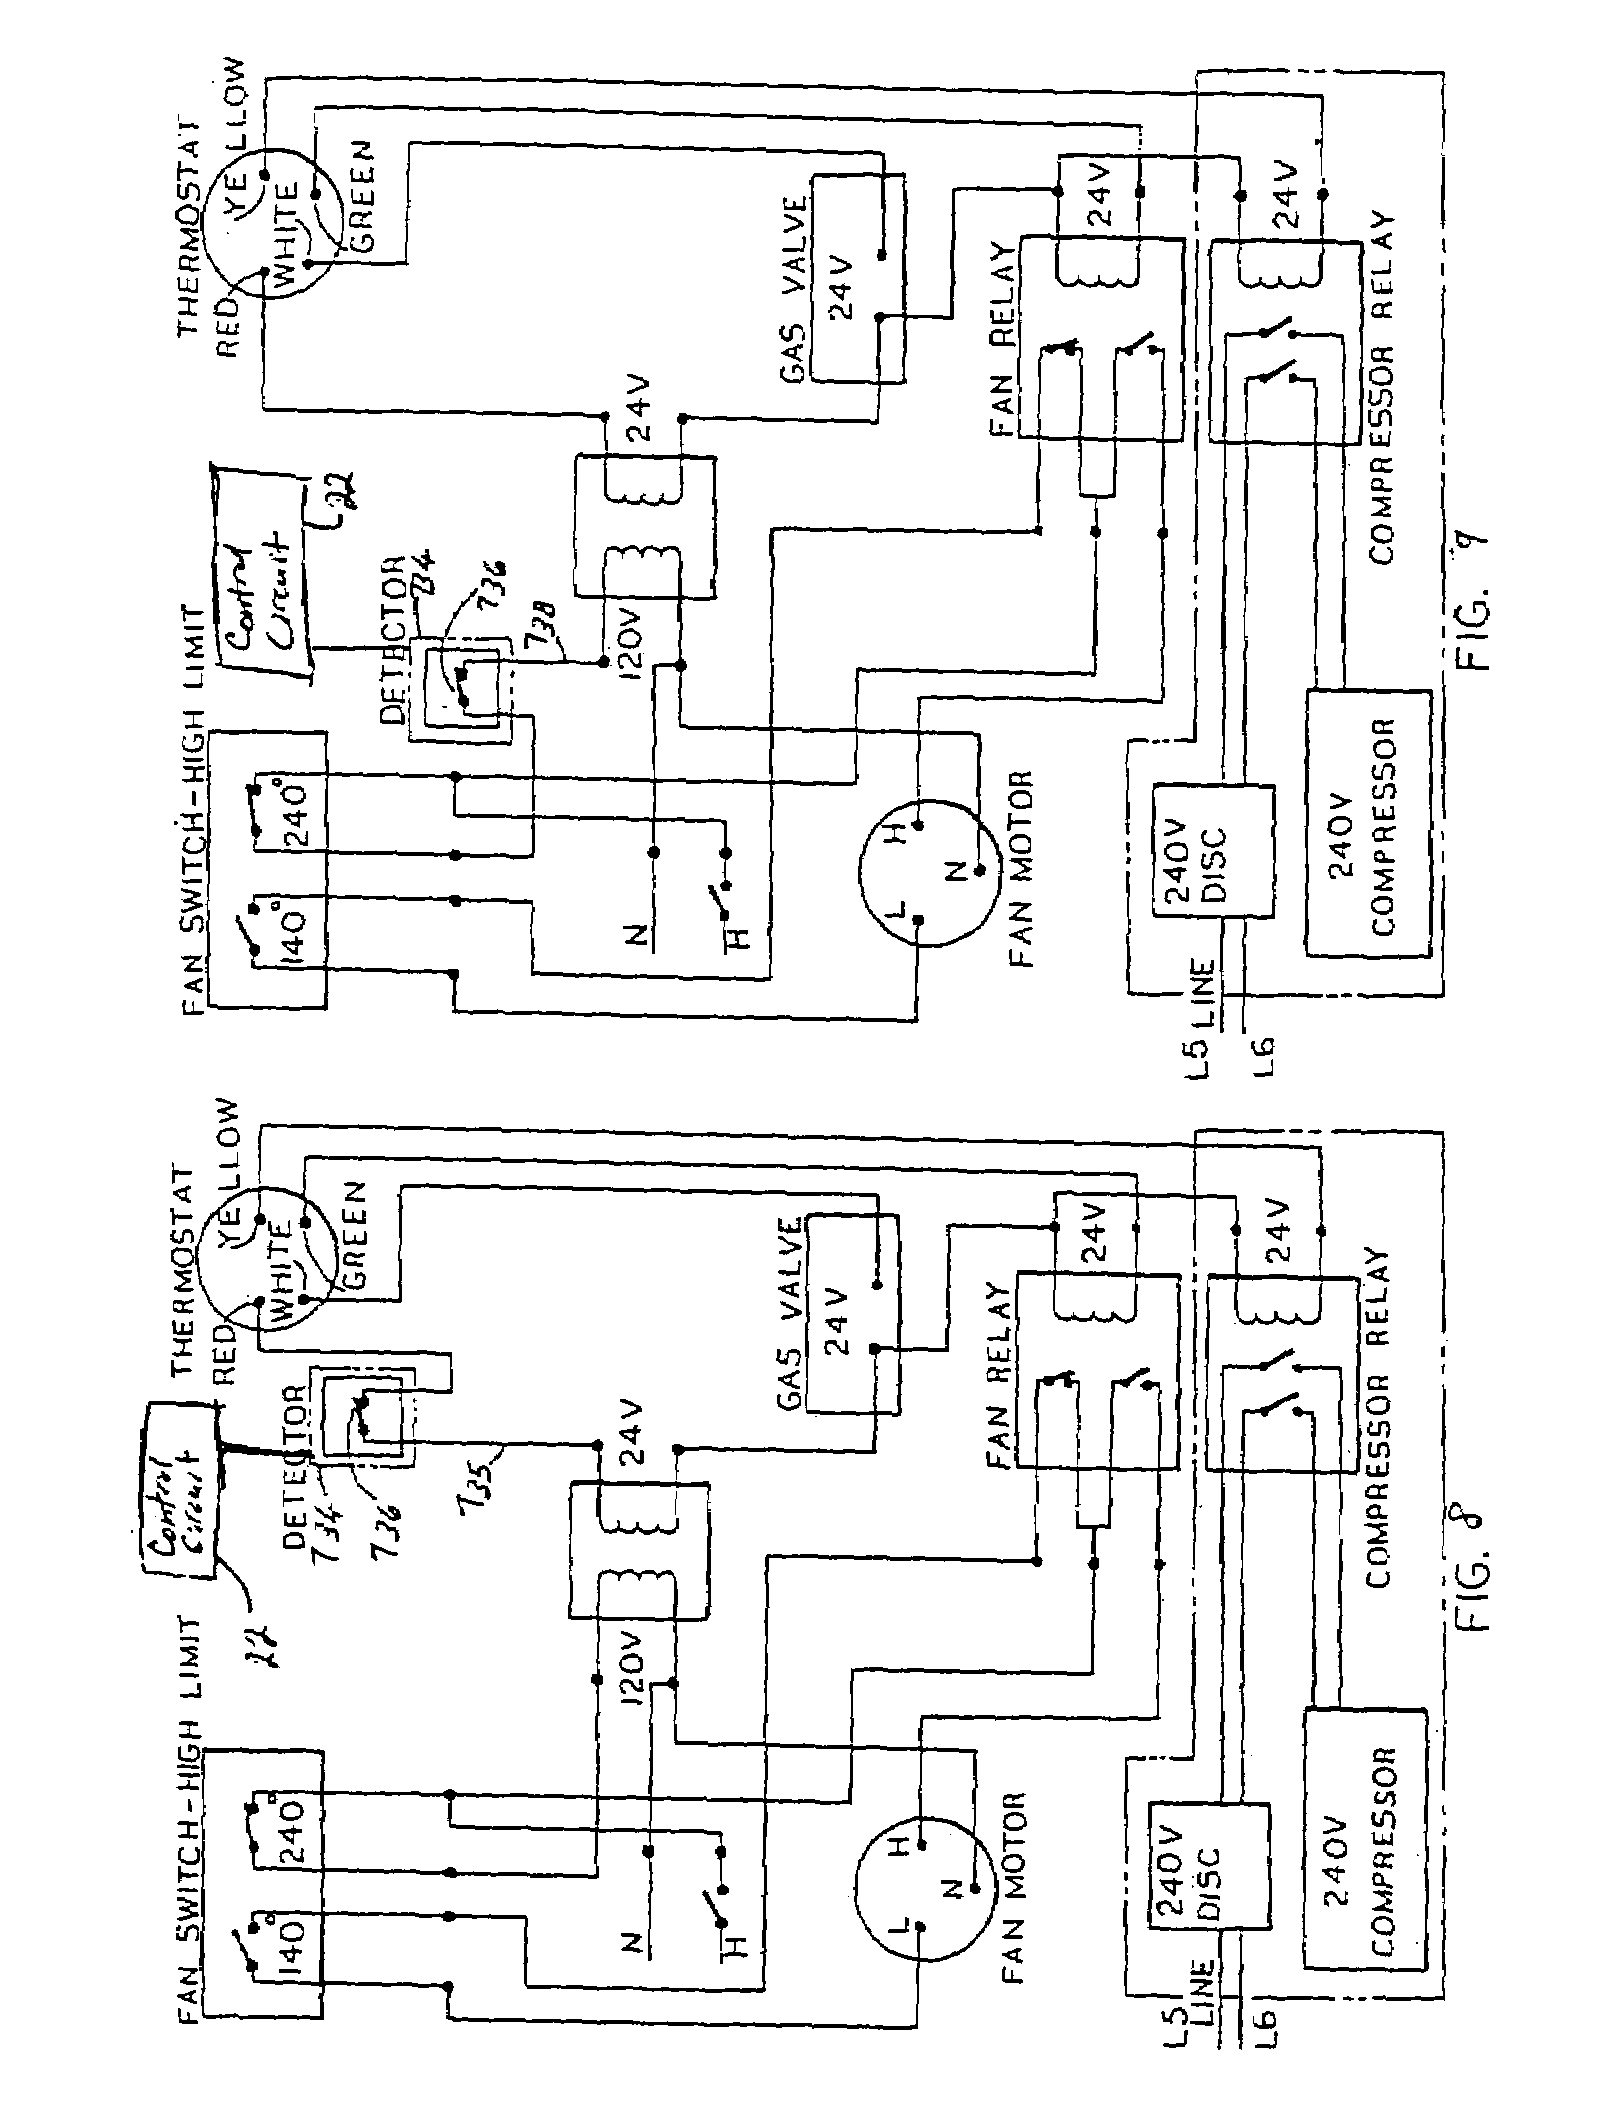 "Electric Circuit Drawing at GetDrawings.com | Free for personal use on headlight wire harness diagram, alternator relay diagram, solid state relay circuit diagram, timer relay diagram, 120v single phase wiring, ice cube latching relay diagram, relay switch diagram, relay function diagram, relay connection diagram, 240 volt wiring diagram, control relay diagram, 120v relay switch, 4pdt relay diagram, 8 terminal relay diagram, 240v generator plug wiring diagram, 8145 20"" electric defrost diagram, alarm latching relay diagram, relay configuration diagram, latching circuit diagram, 120v latching relay,"